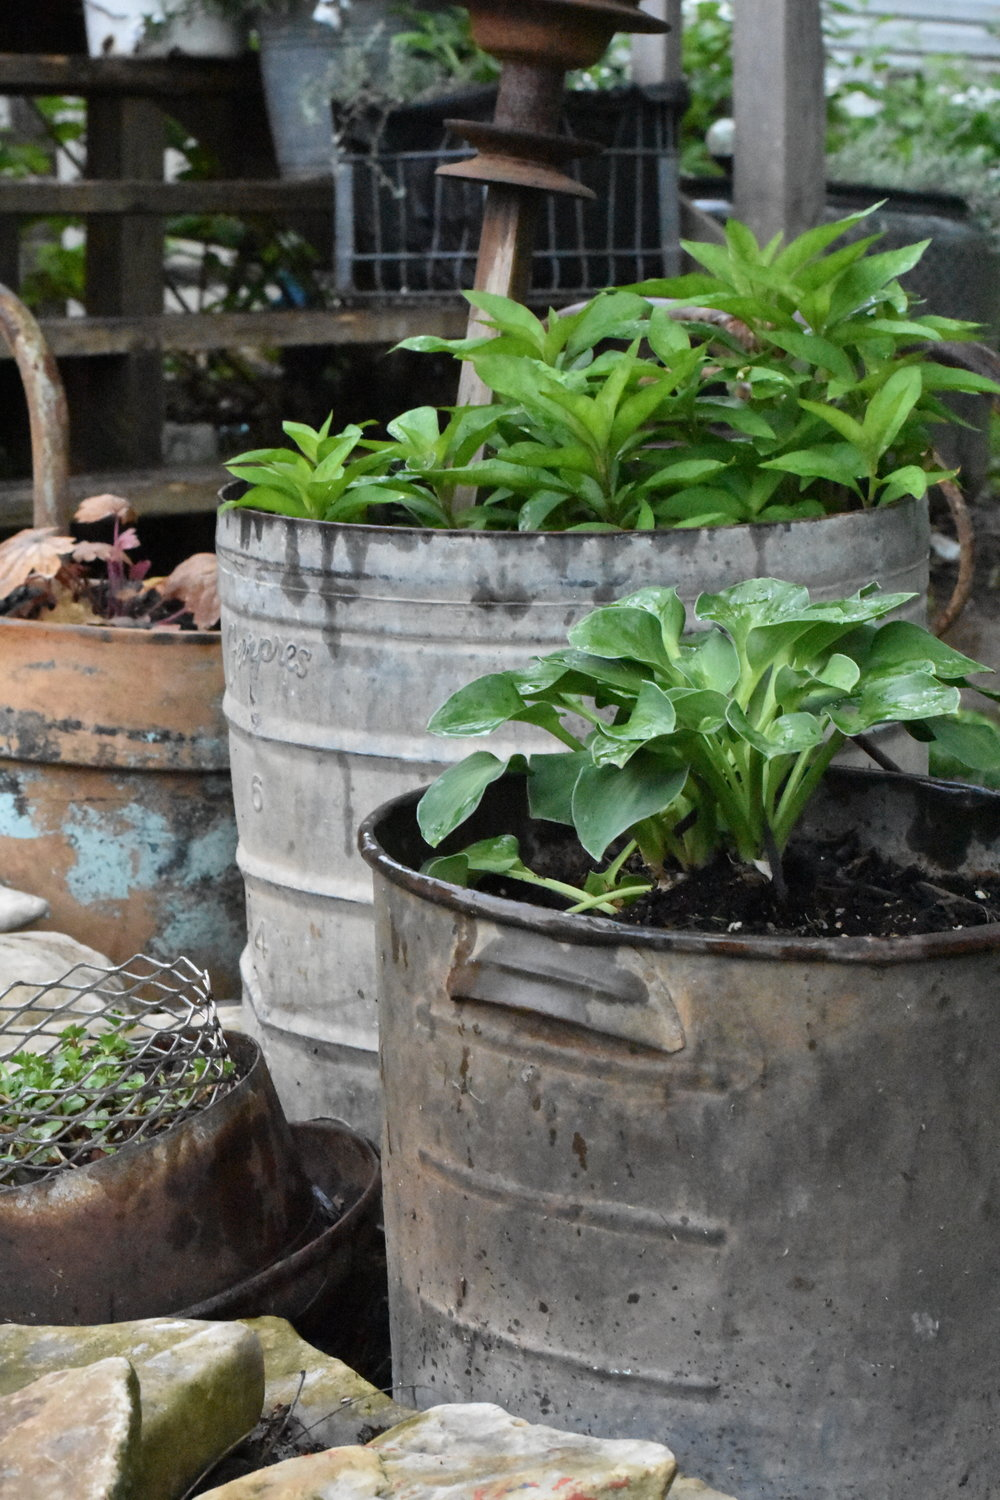 How to use galvanized buckets in the garden | Rocky Hedge Farm